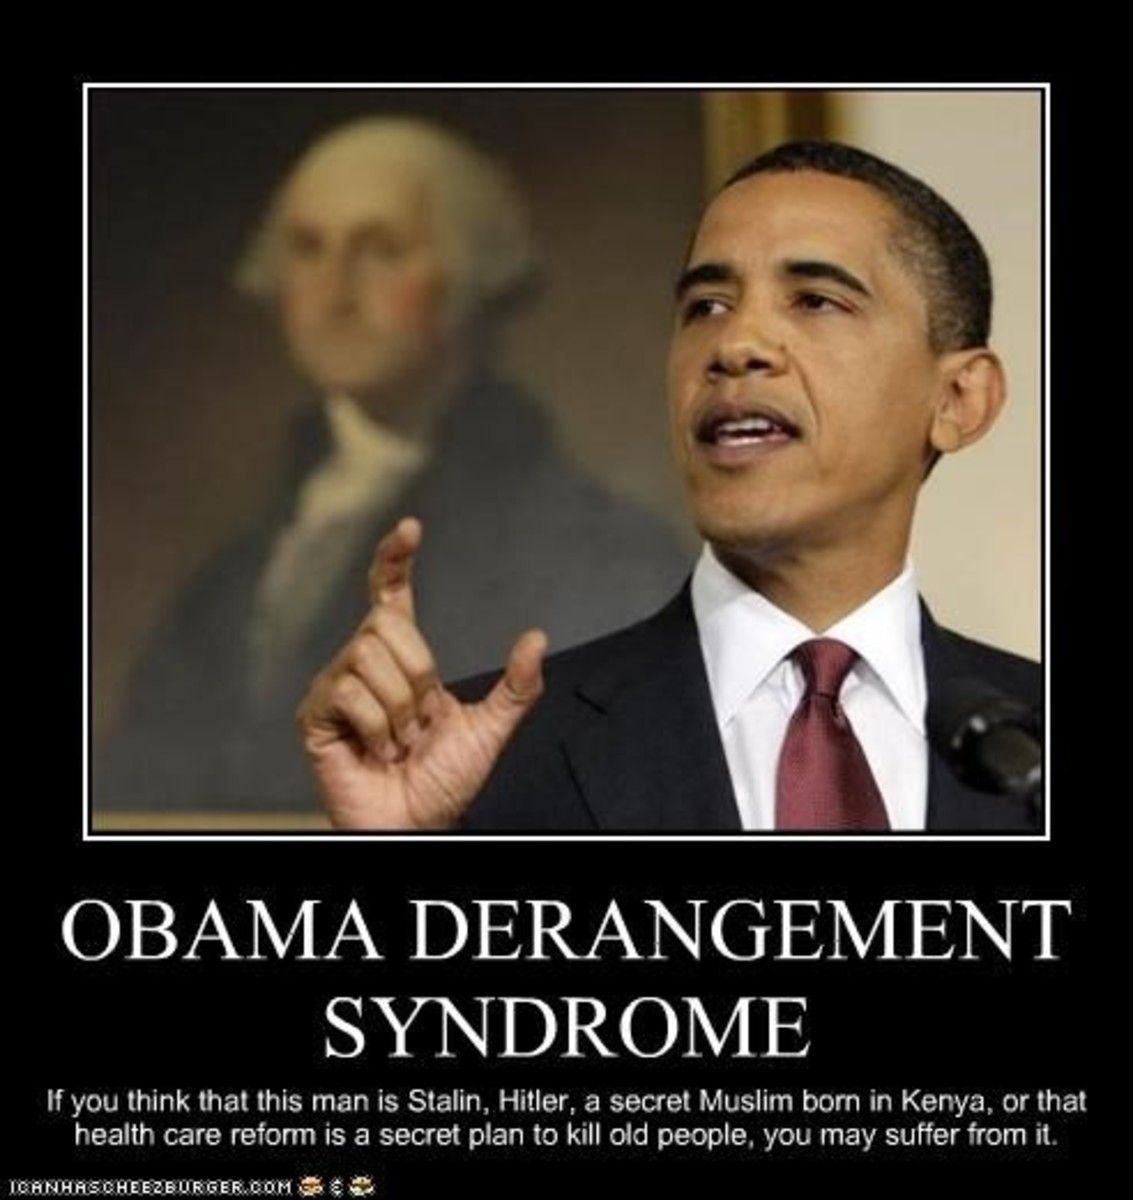 An example of Obama Derangement Syndrome